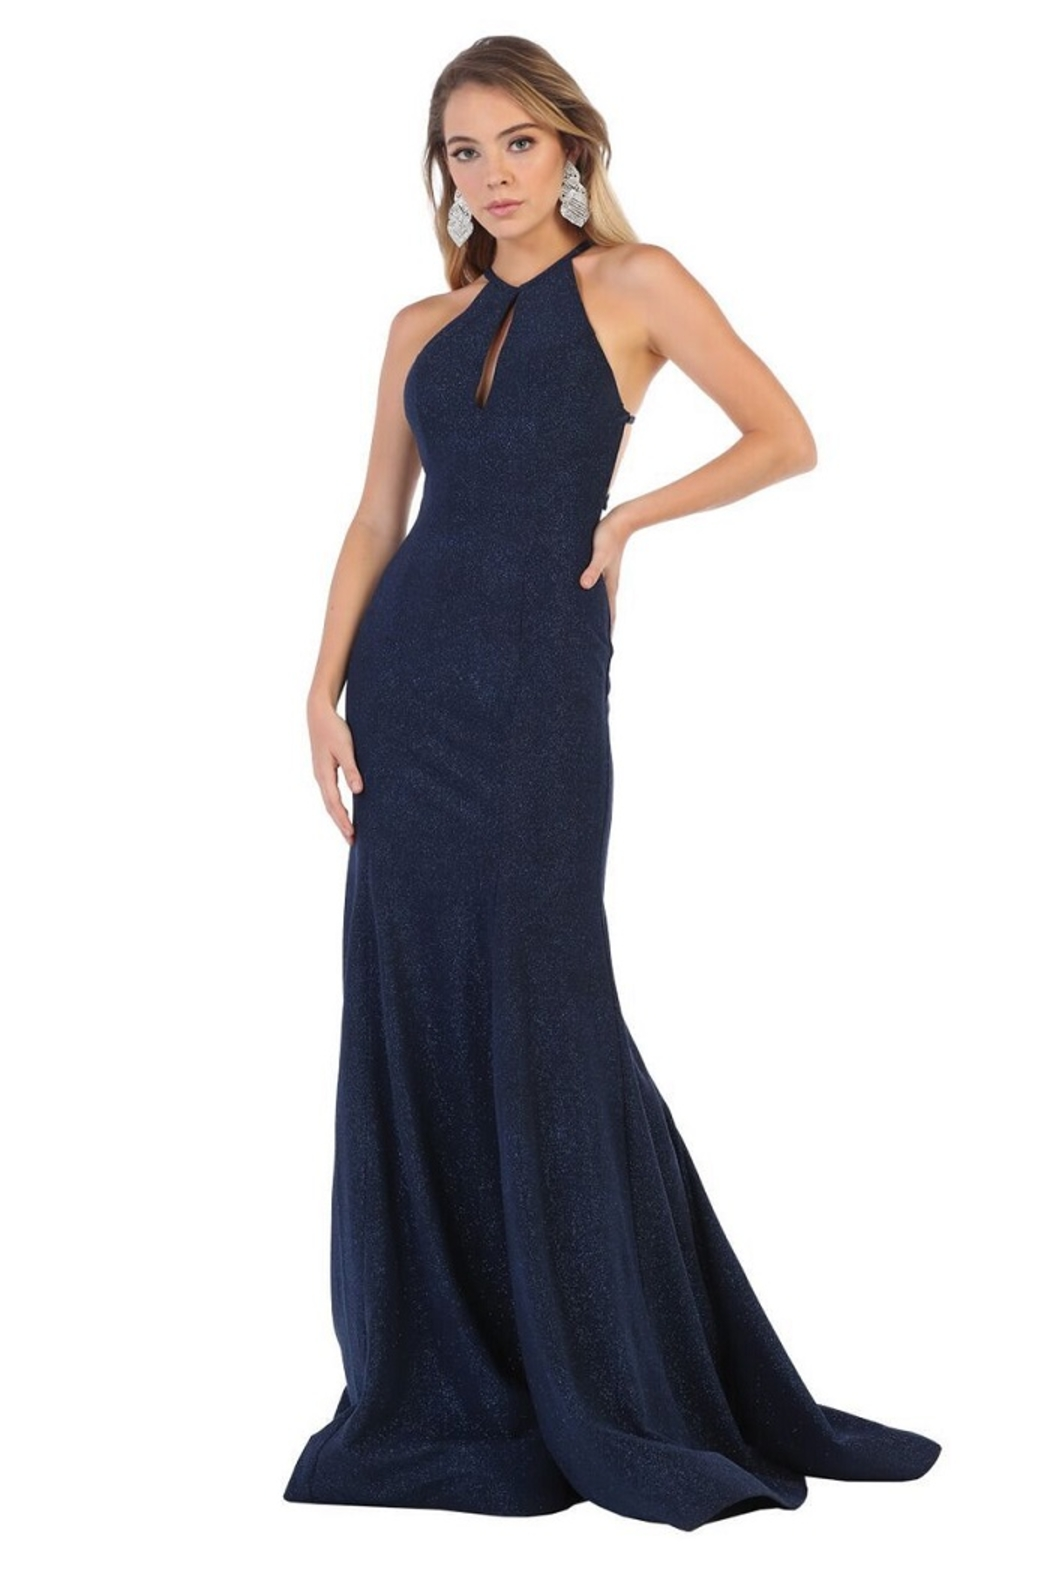 May Queen  Navy Glitter Fit & Flare Formal Long Dress - Main Image